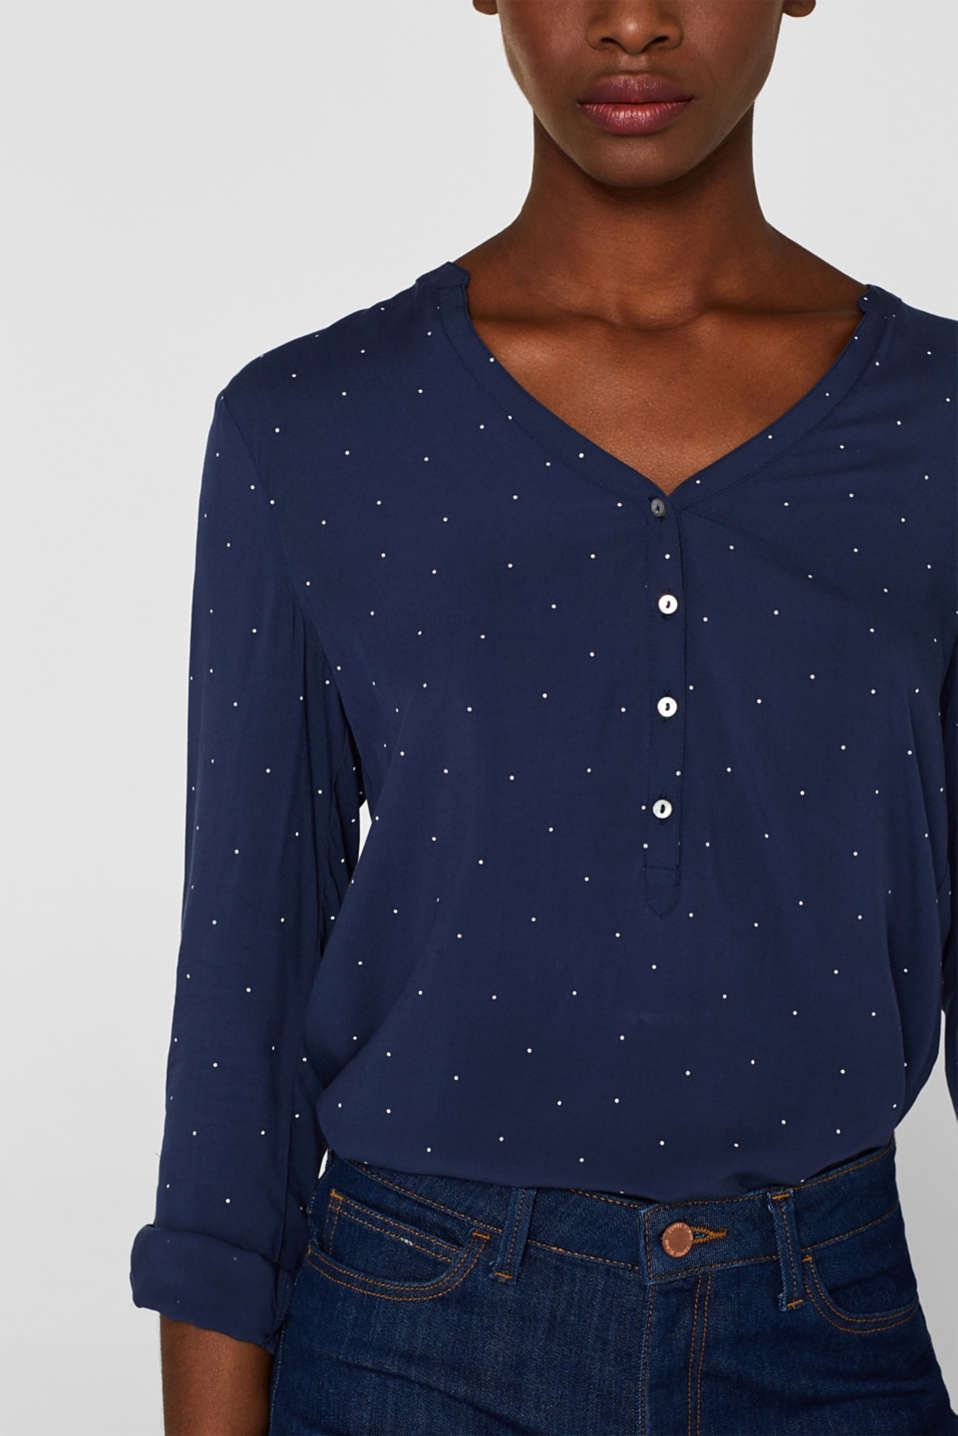 Henley blouse with polka dots and turn-up sleeves, NAVY, detail image number 2